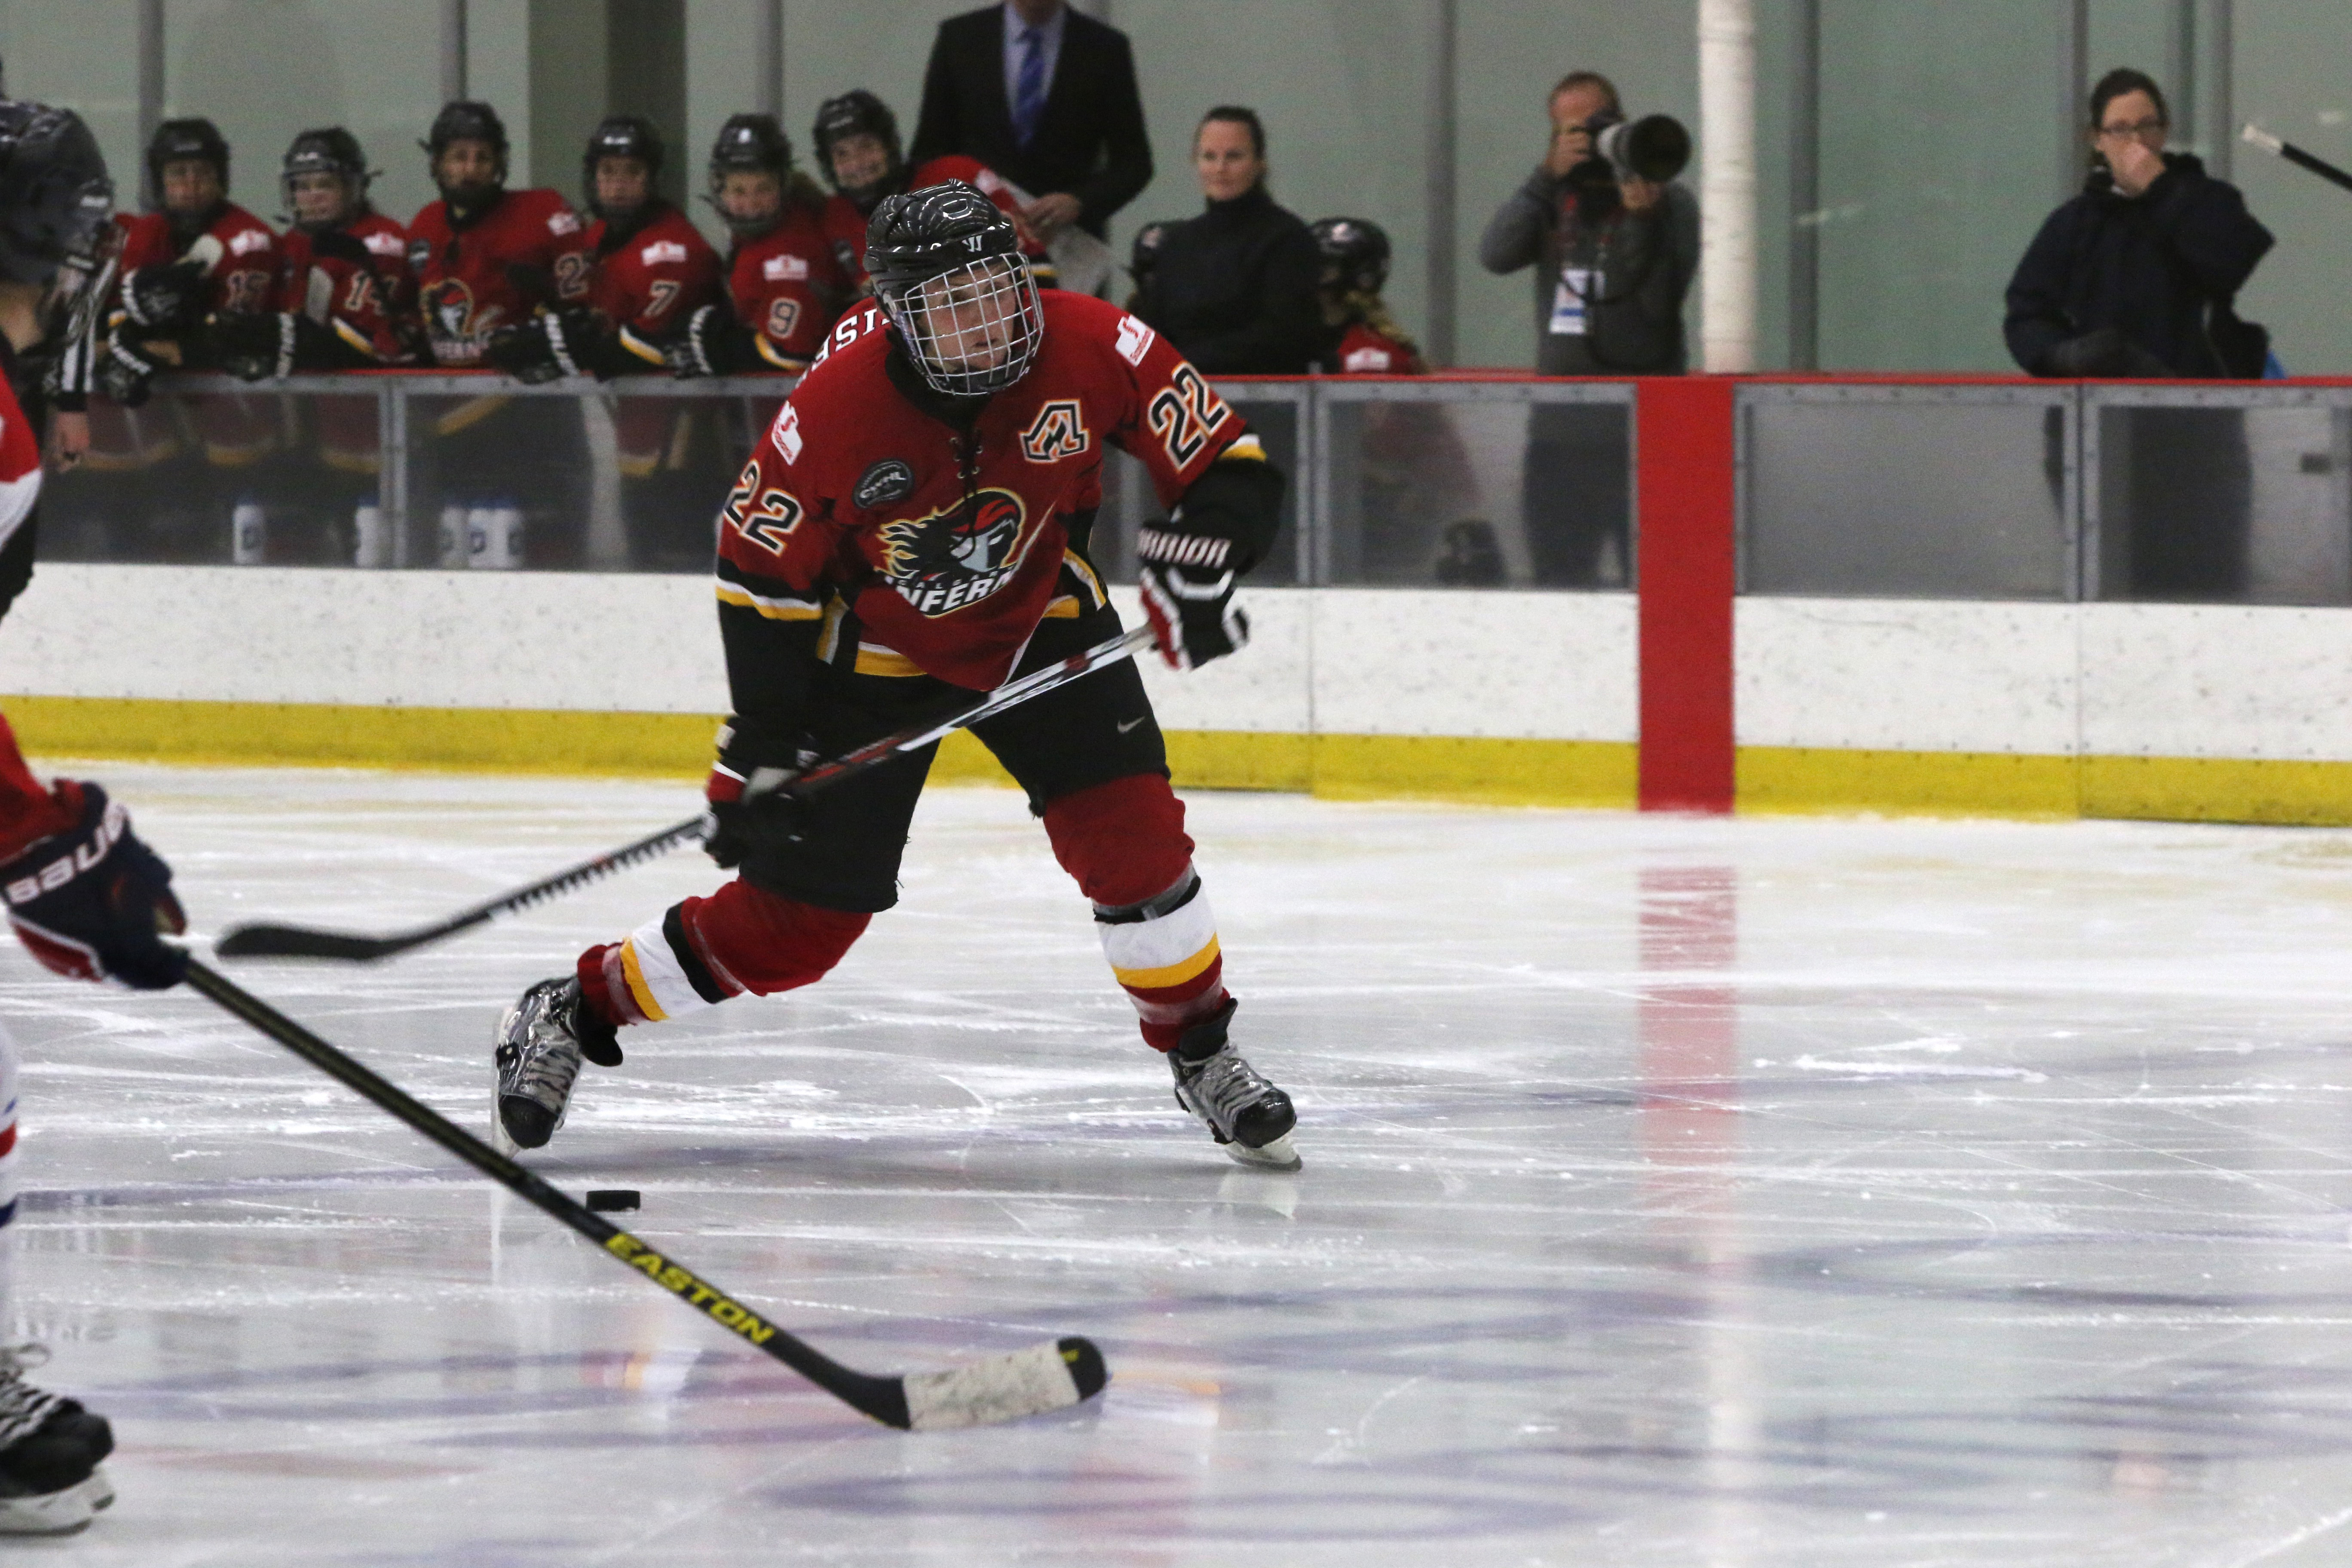 Hayley Wickenheiser and the Inferno are back at it Saturday and Sunday against the team nipping their heels for first place, the Brampton Thunder.